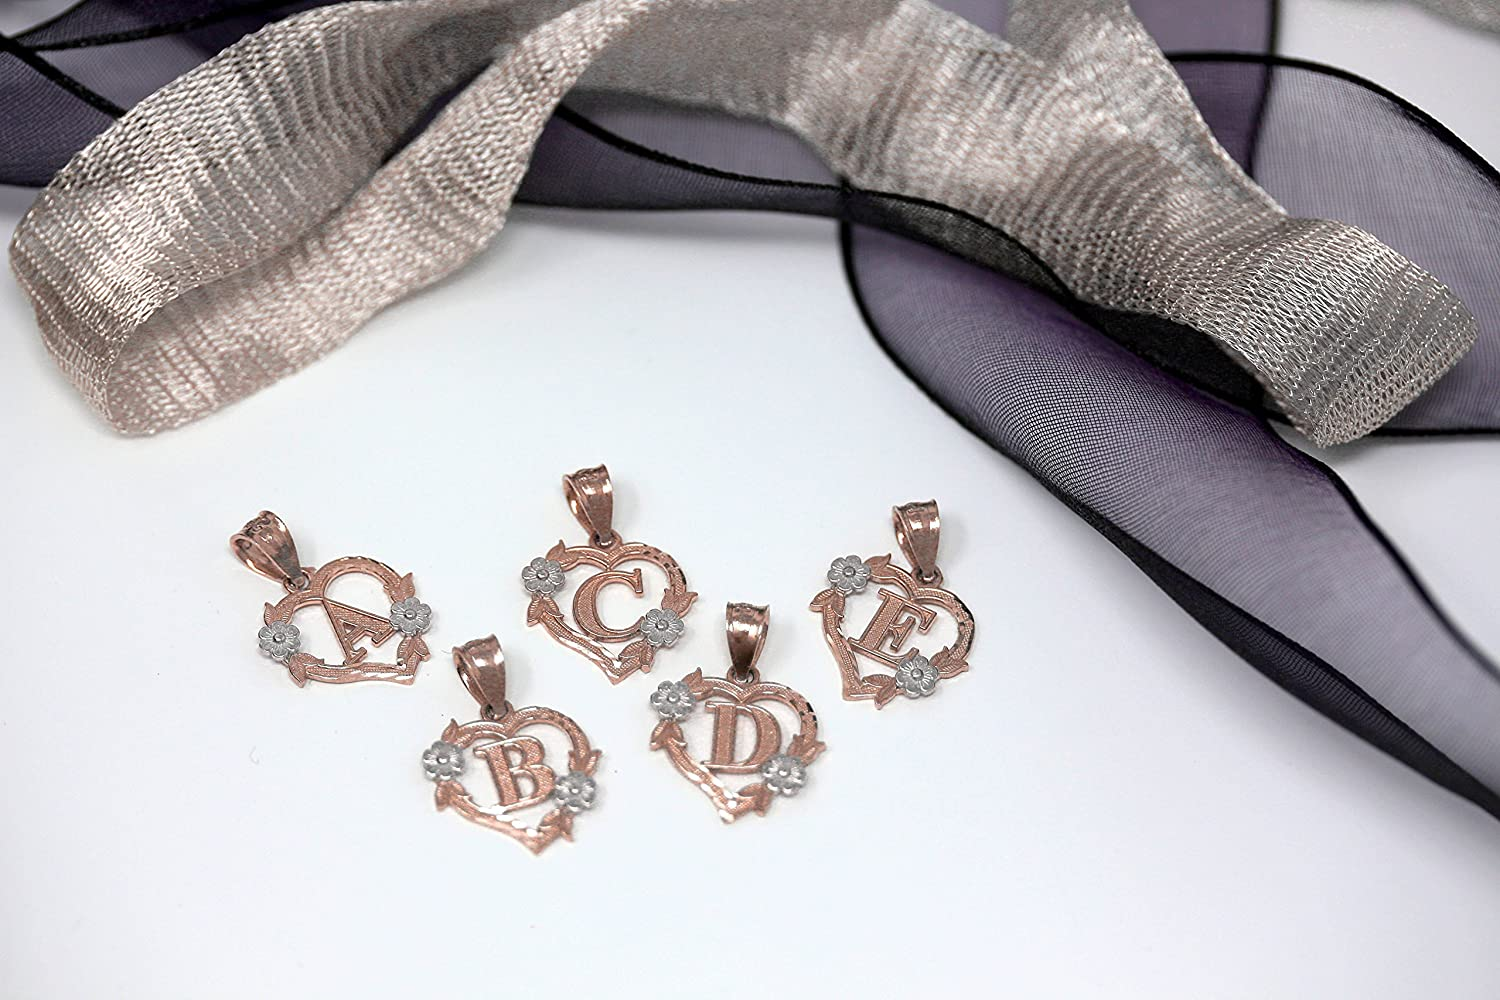 CaliRoseJewelry 14k Gold Initial Heart Pendant and Ring Set Letter R